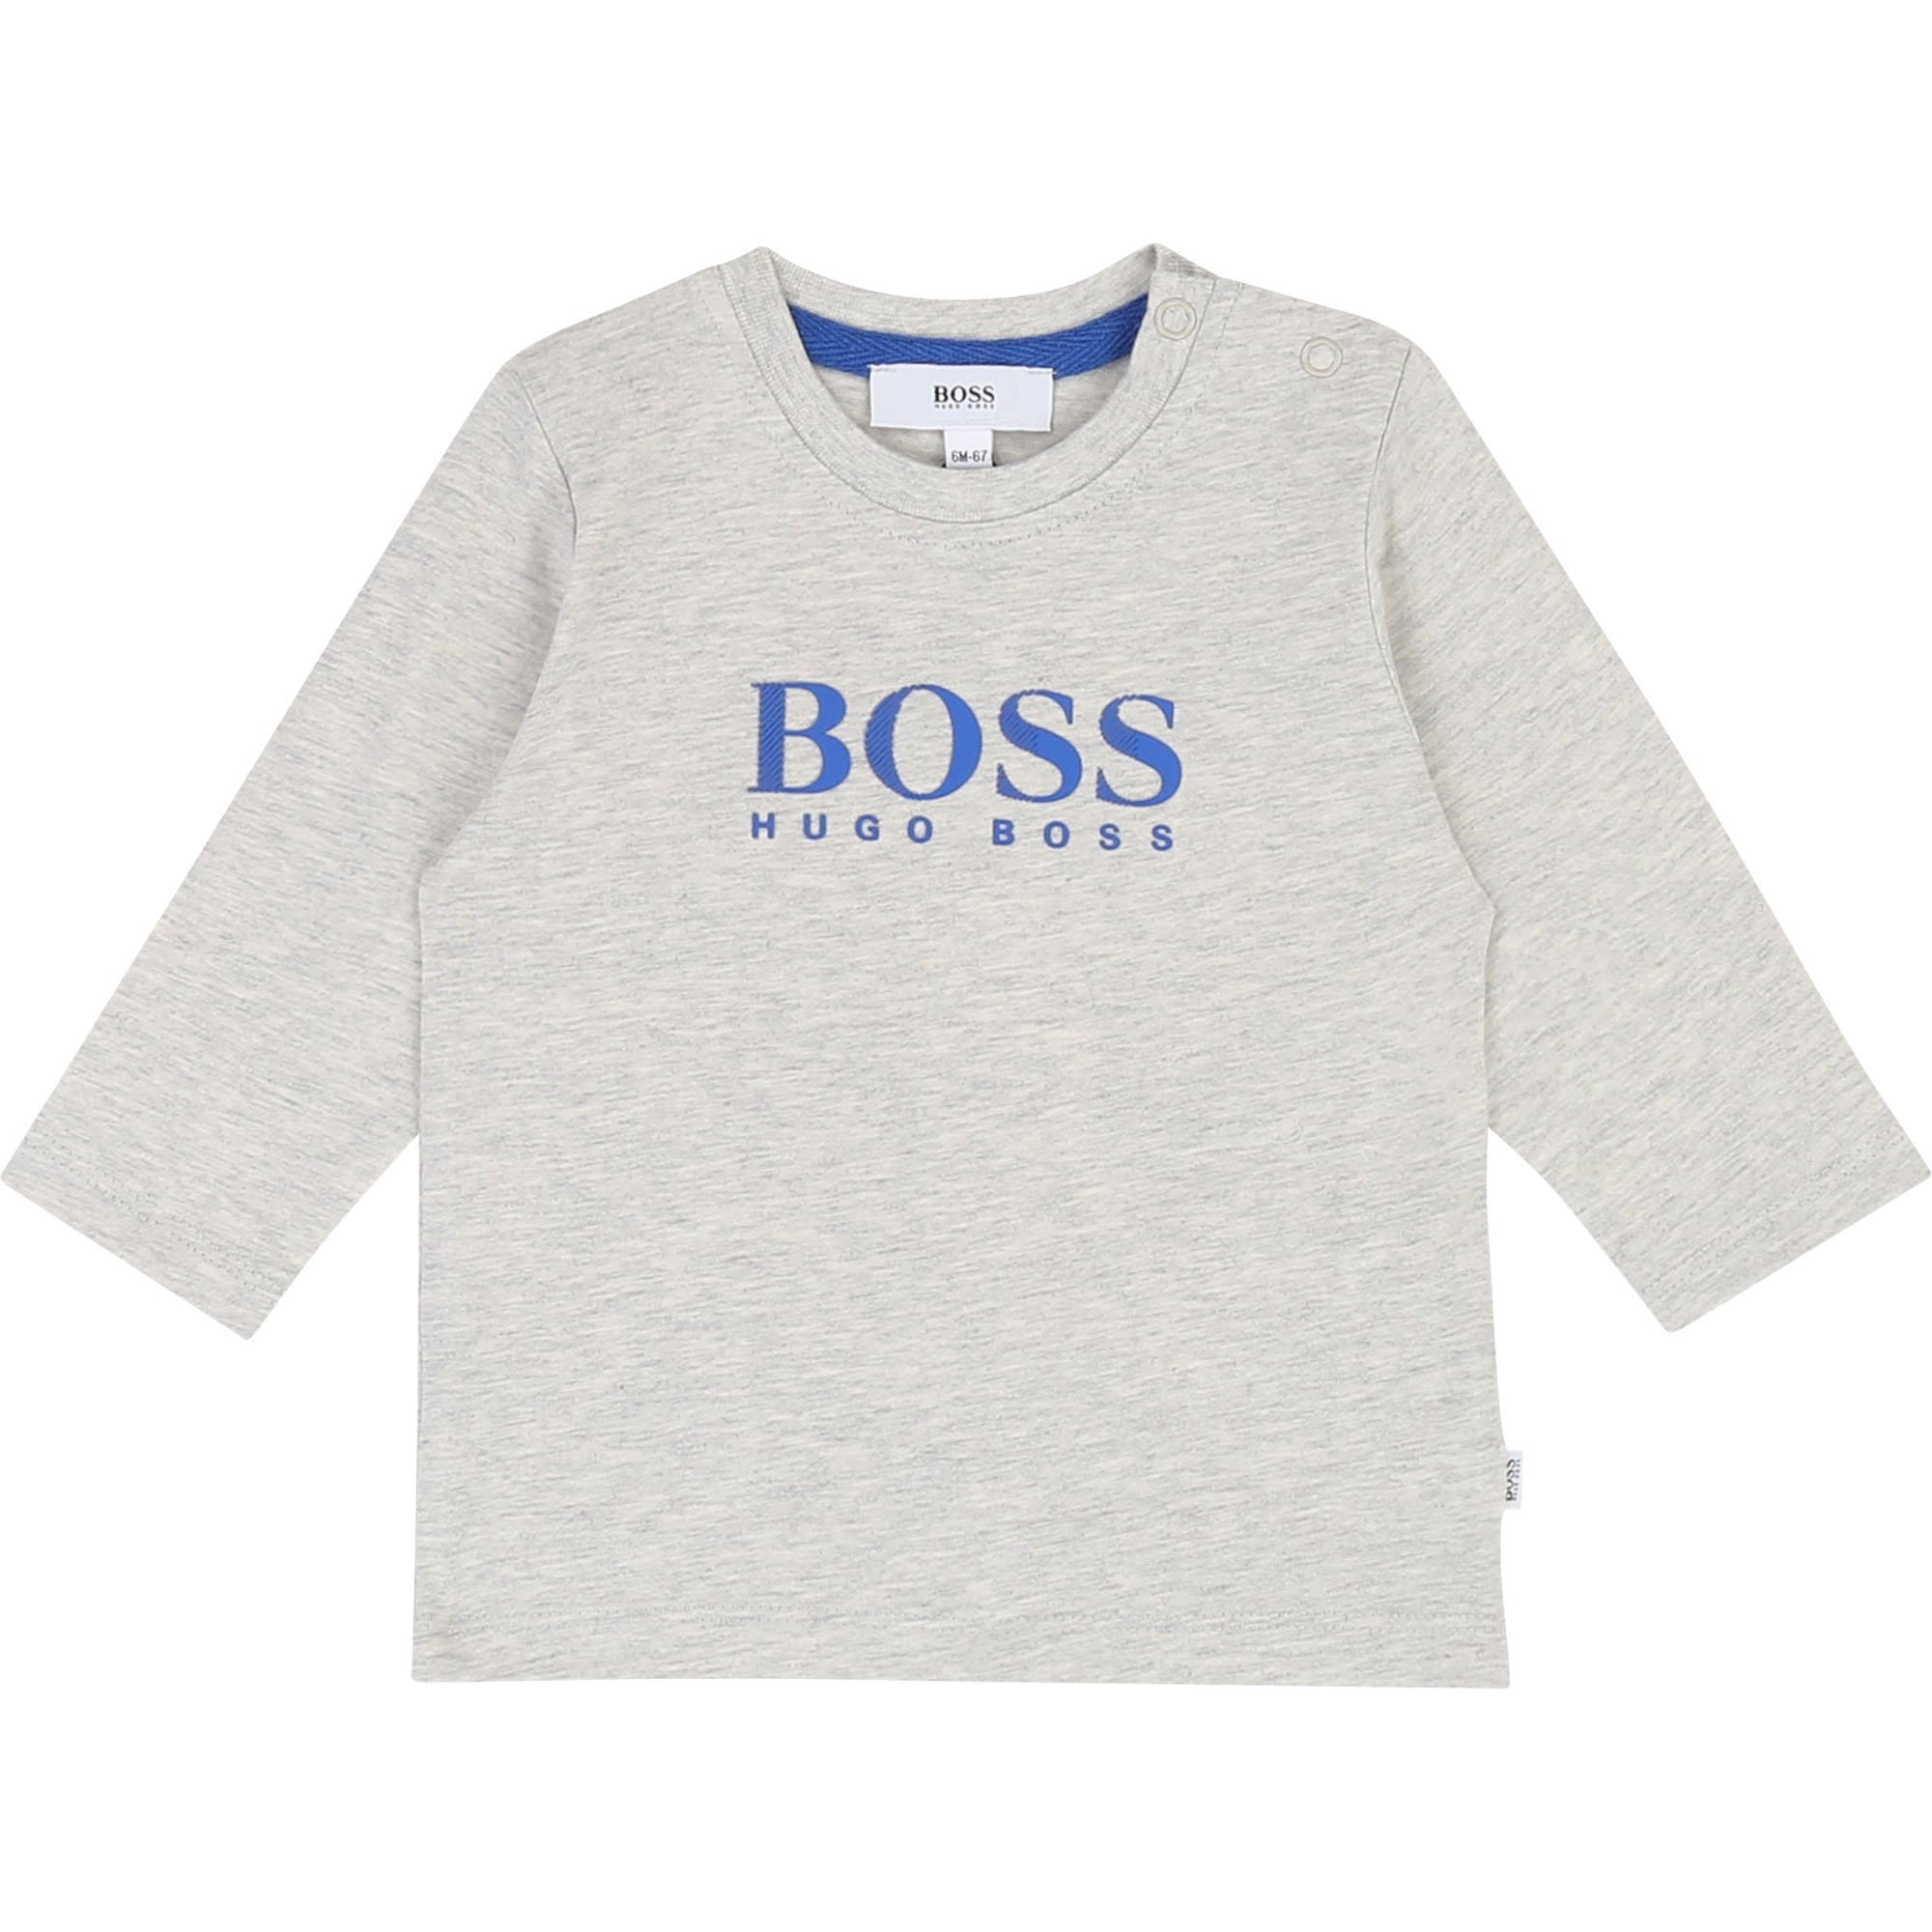 Hugo Boss Babies Long Sleeve T-Shirt (4702399299715)